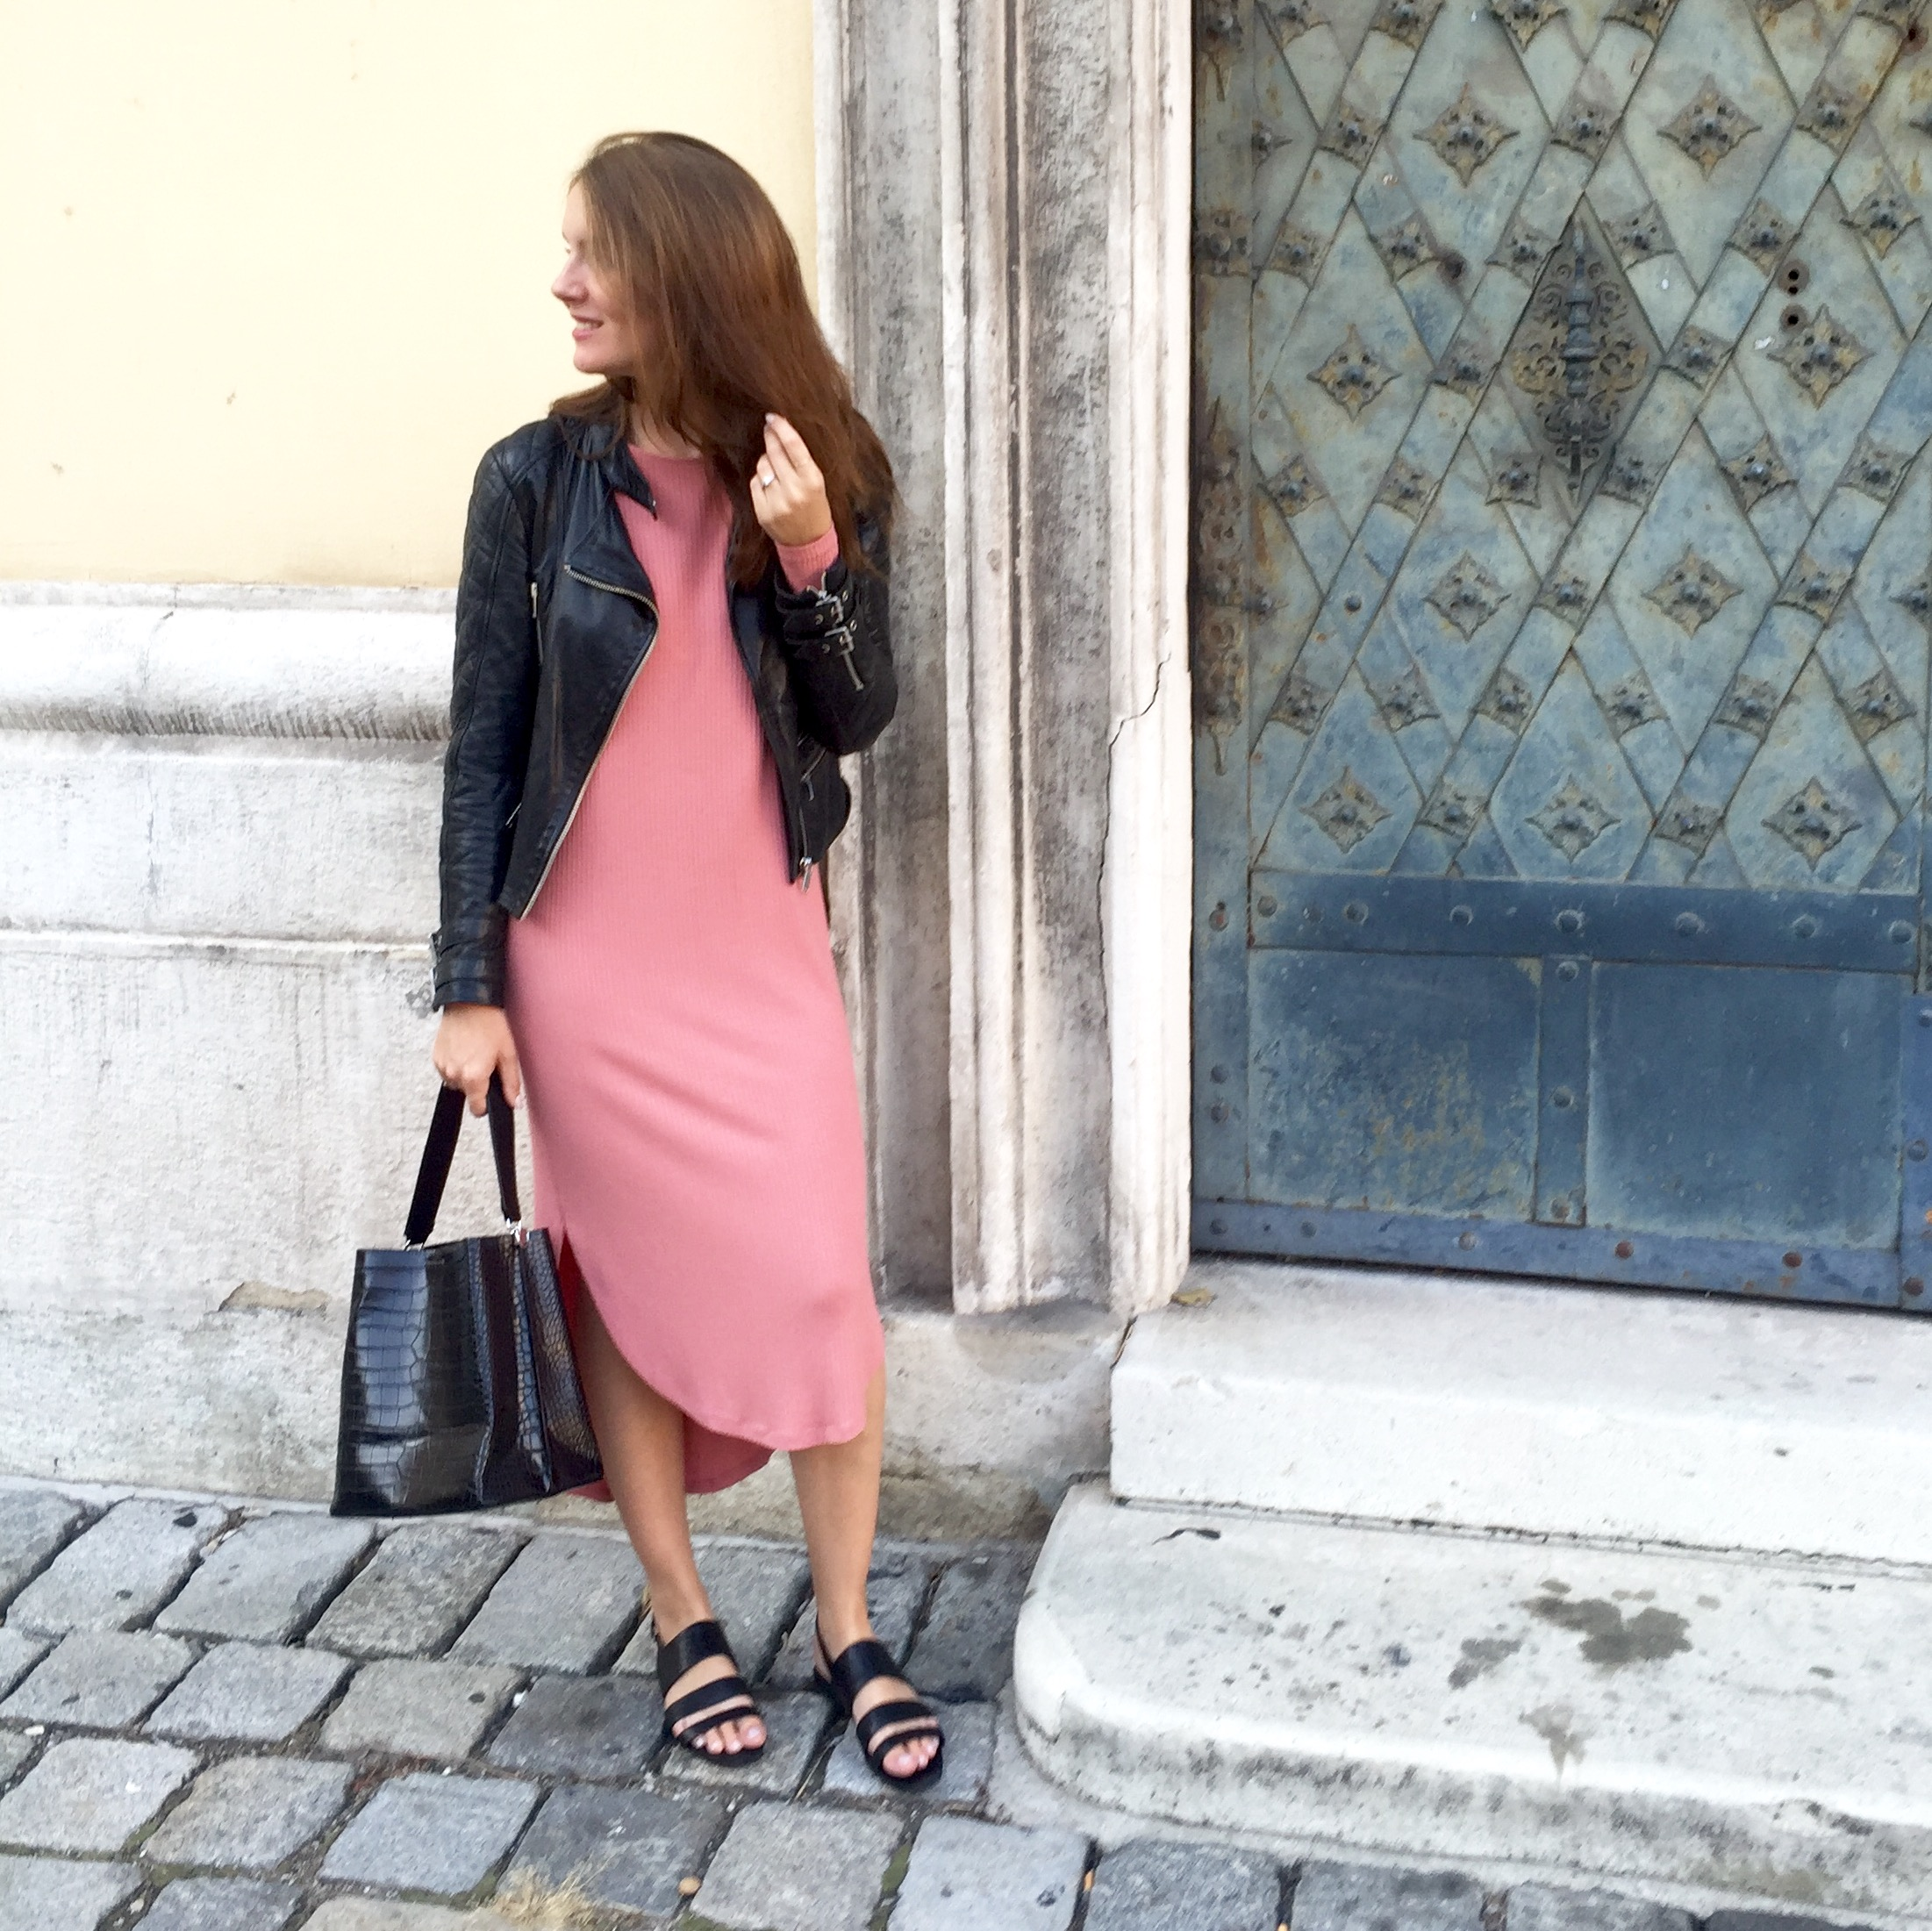 Dress  ASOS £22 , Bag  Zara £39.99 , Sandals  sold out . Leather Jacket  sold out